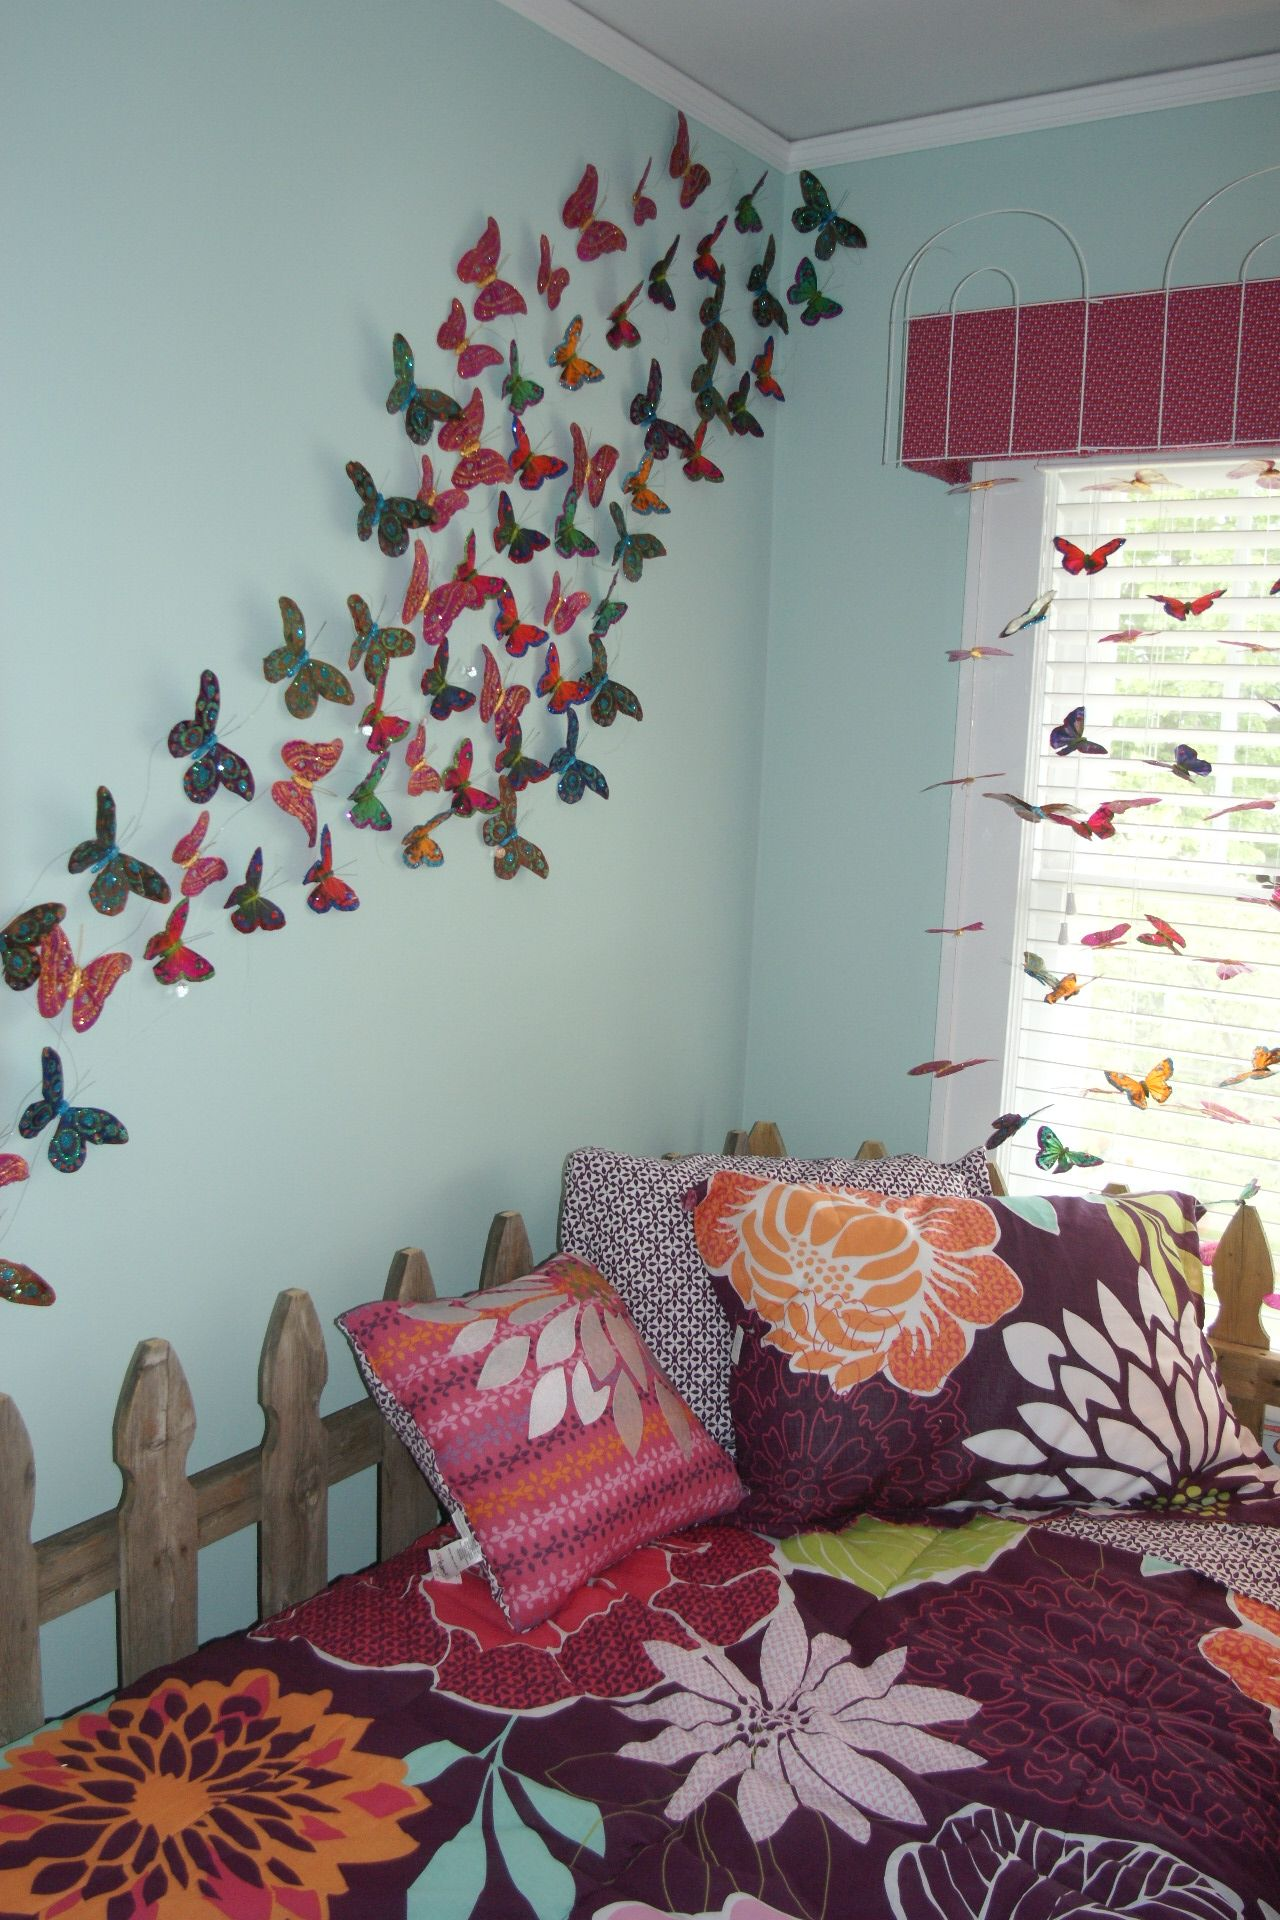 Butterfly Bedroom Butterfly Bedroom Butterfly Decorations Bedroom Butterfly Room Decor